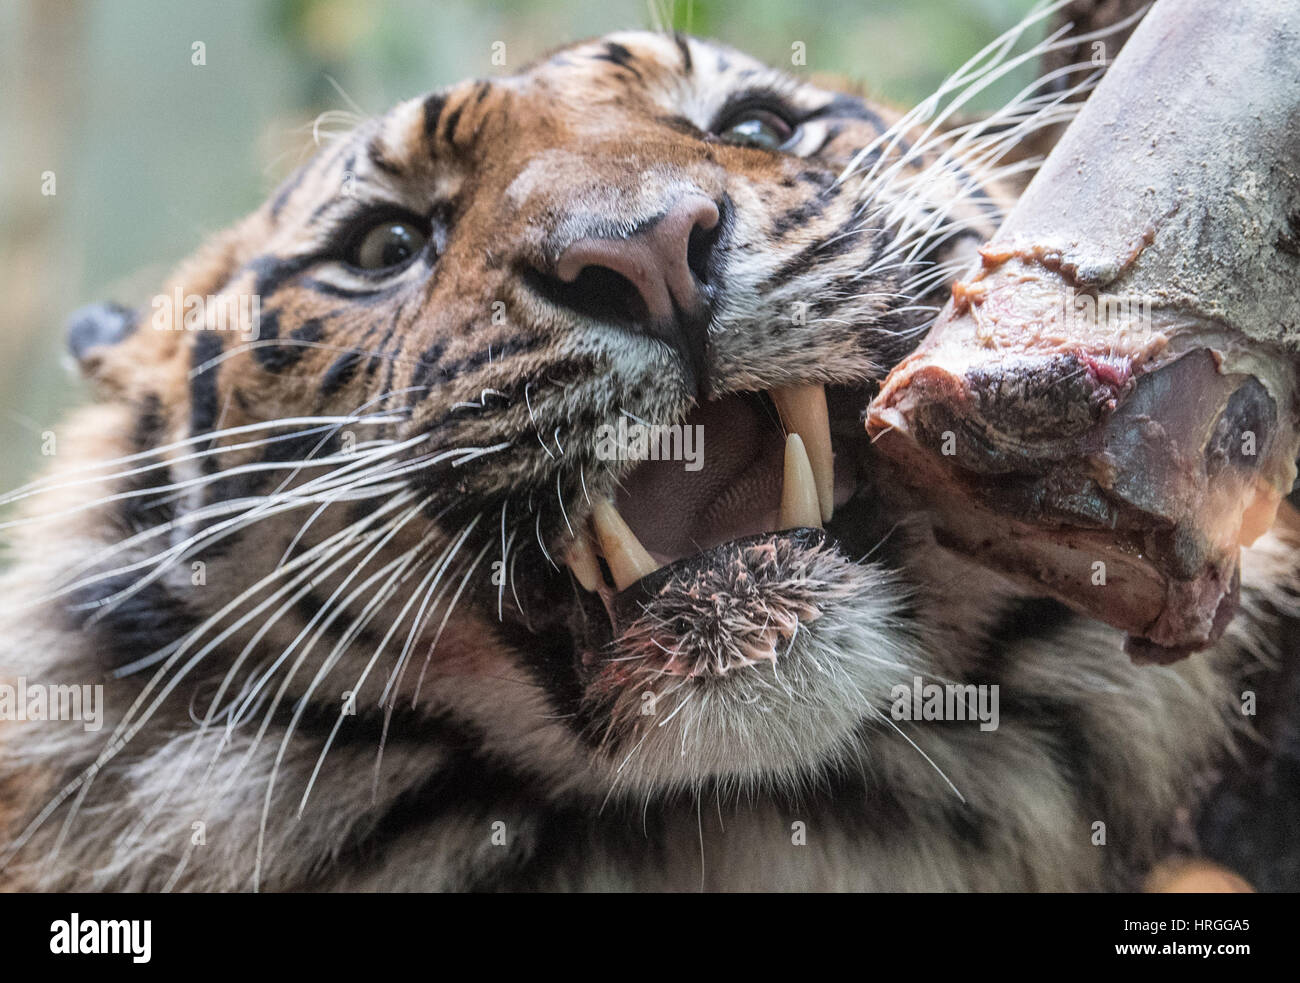 Frankfurt, Germany. 1st Mar, 2017. Vanni the tiger, a new arrival in the zoo in Frankfurt am Main, Germany, 01 March - Stock Image